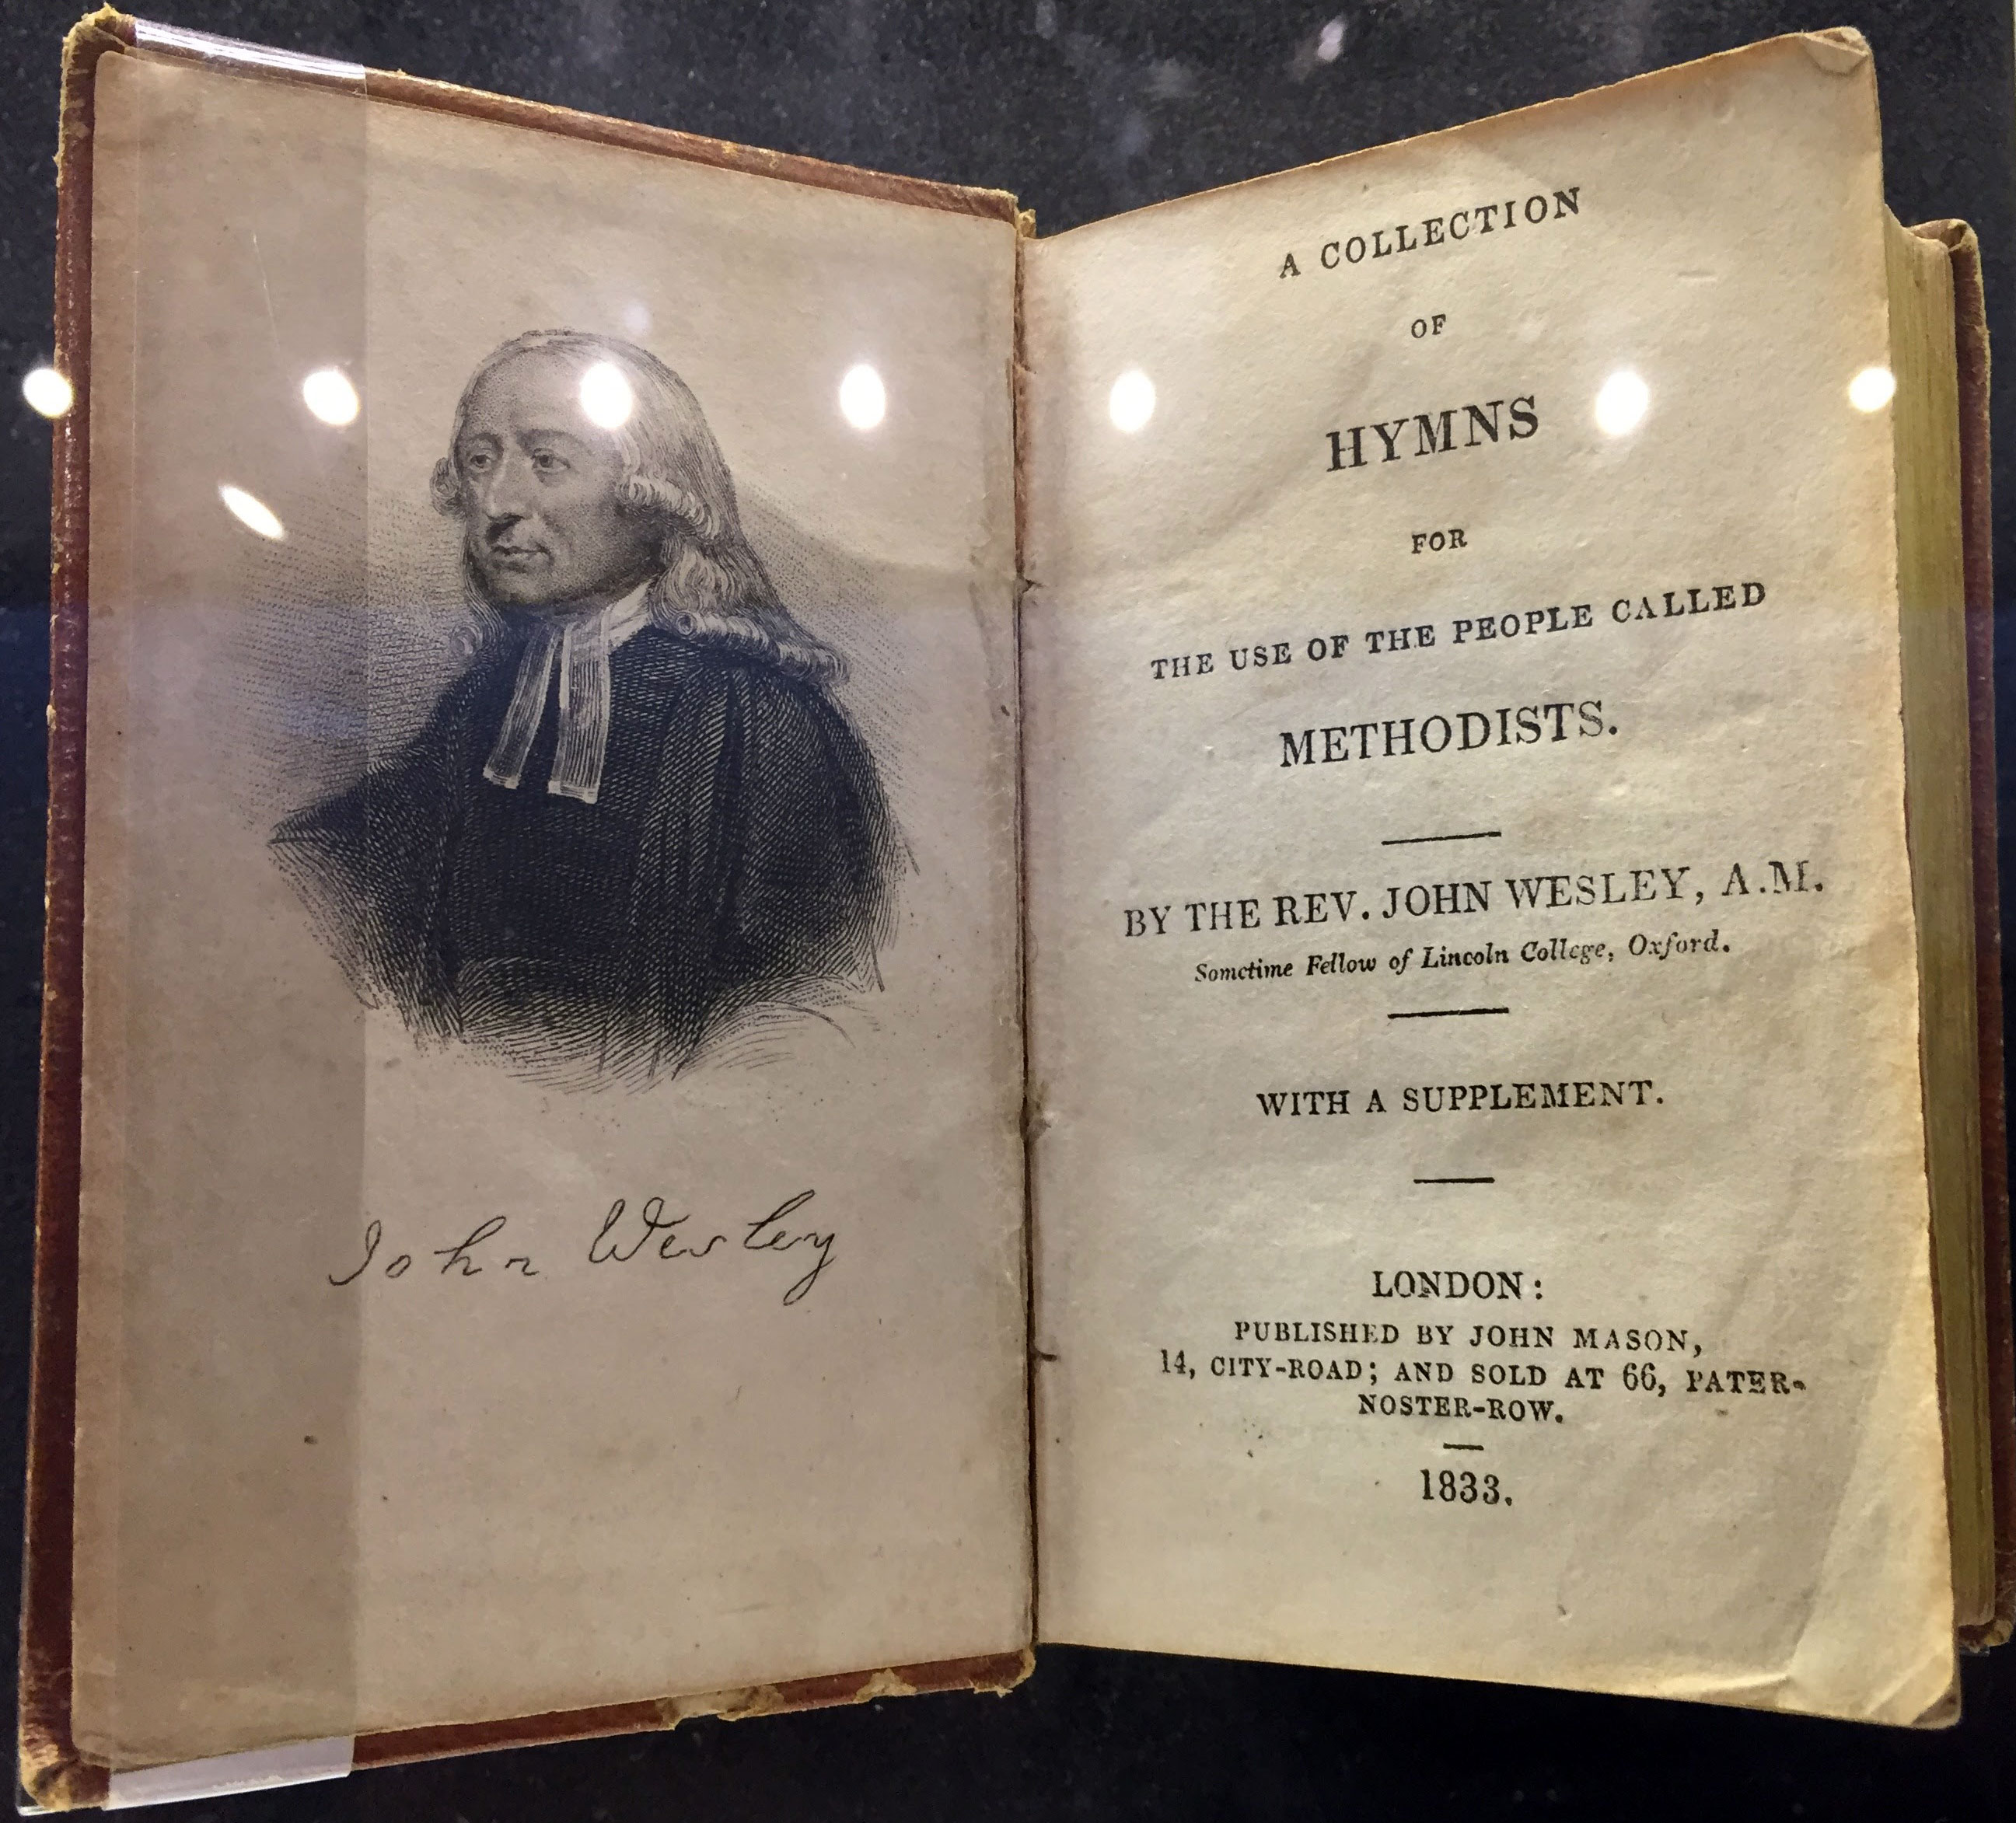 The hymns of Charles Wesley are an important part of our heritage. Photo by Joe Iovino, United Methodist Communications.